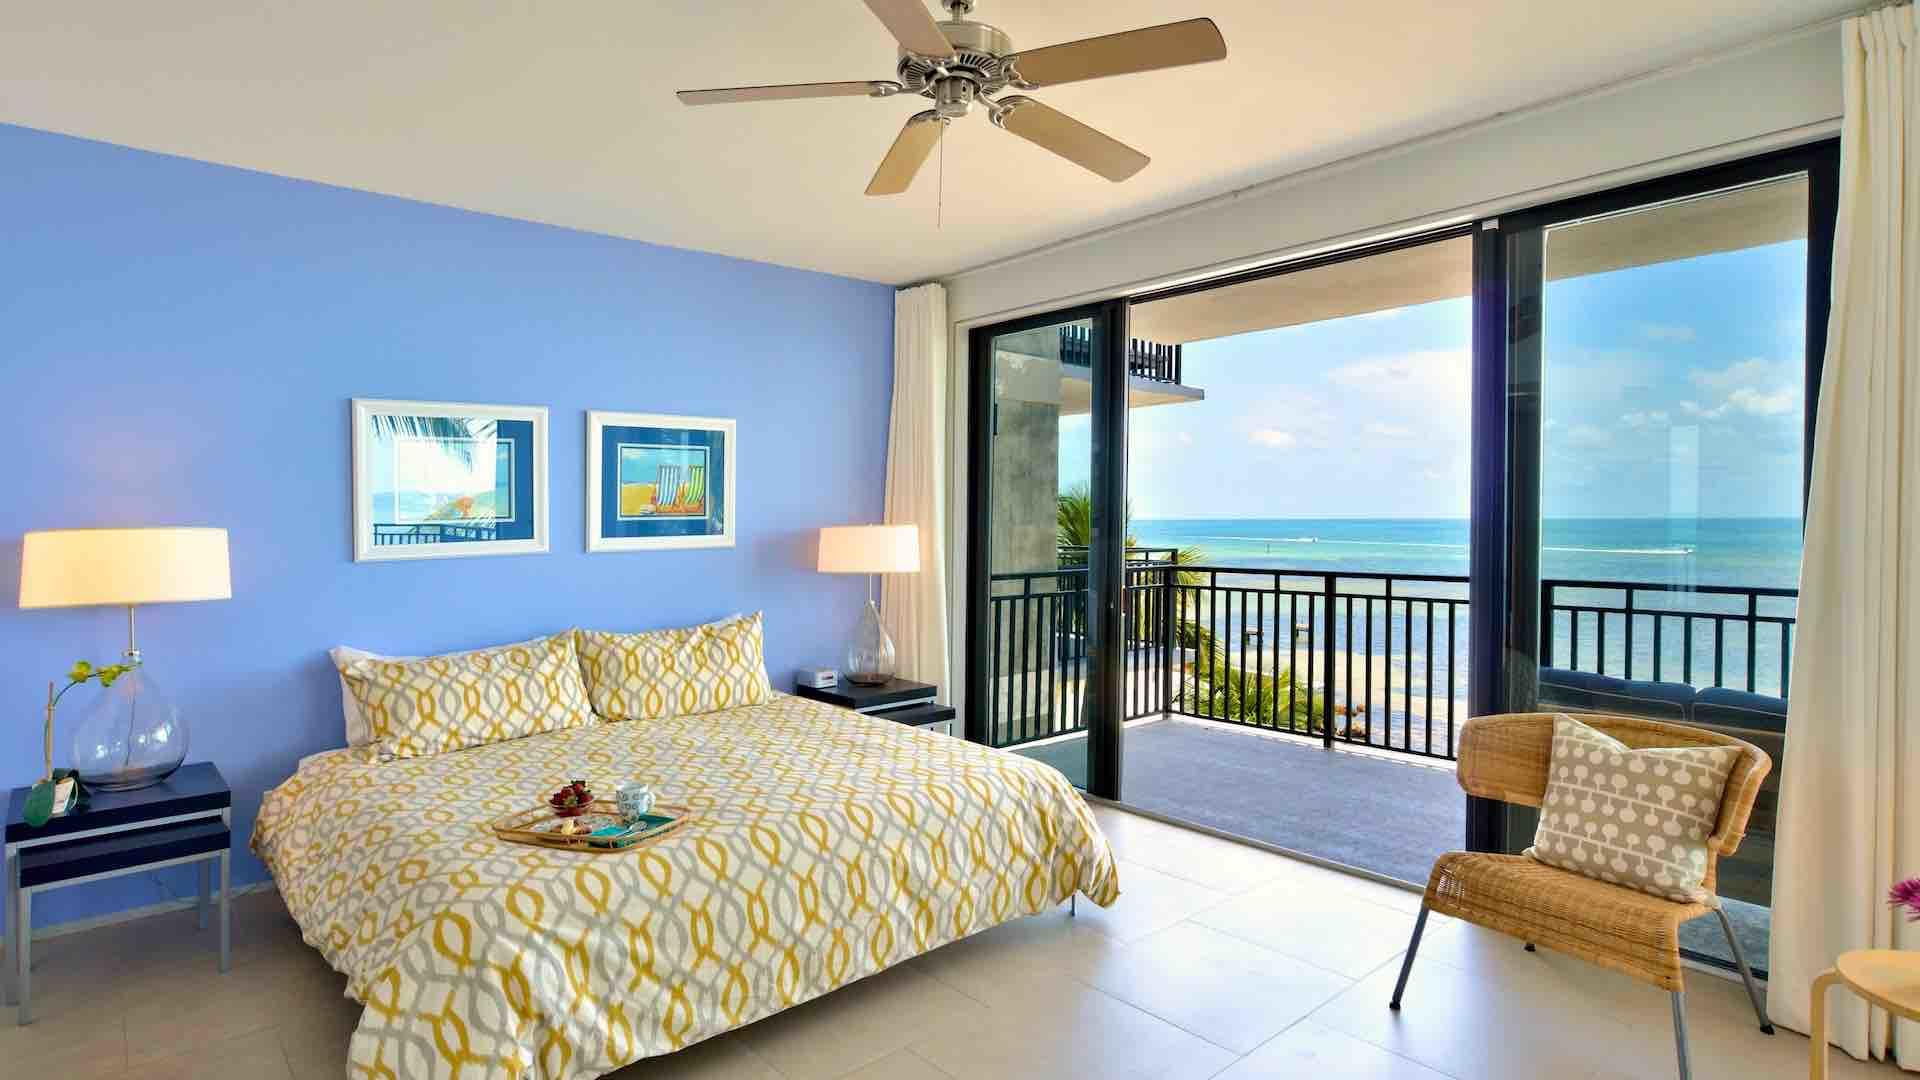 The master bedroom has a king bed and dramatic ocean views...